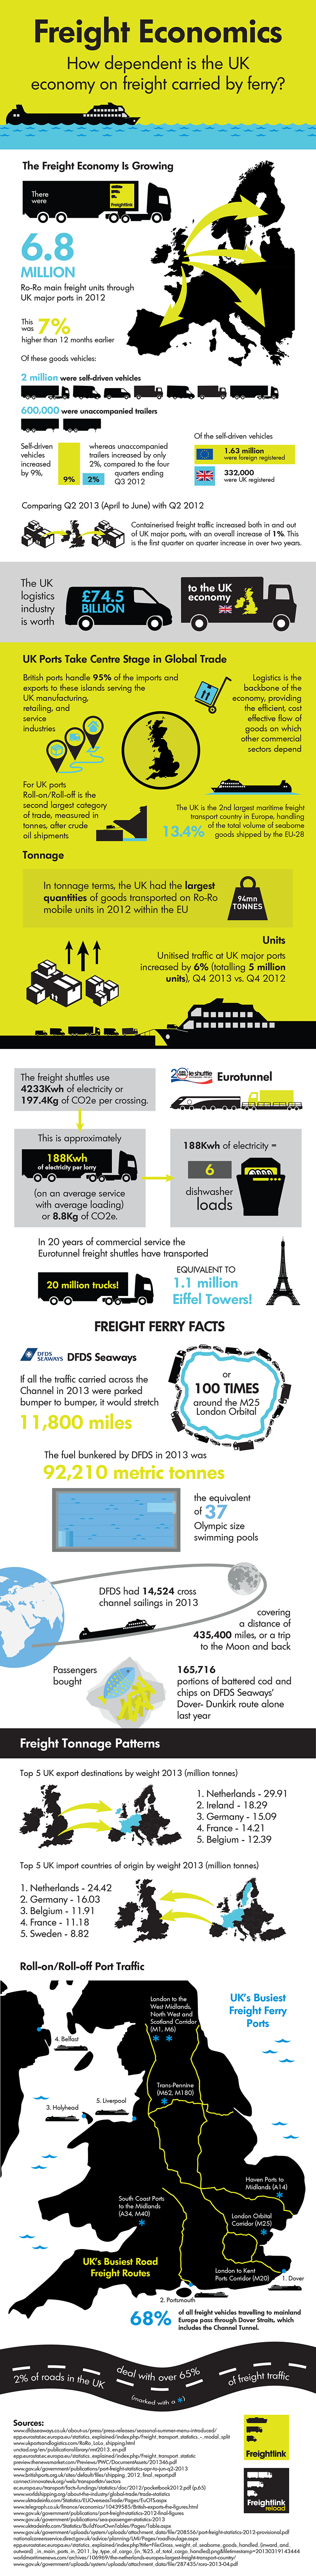 Infographic: How Dependent is The UK Economy on Freight Carried by Ferry? #infographic